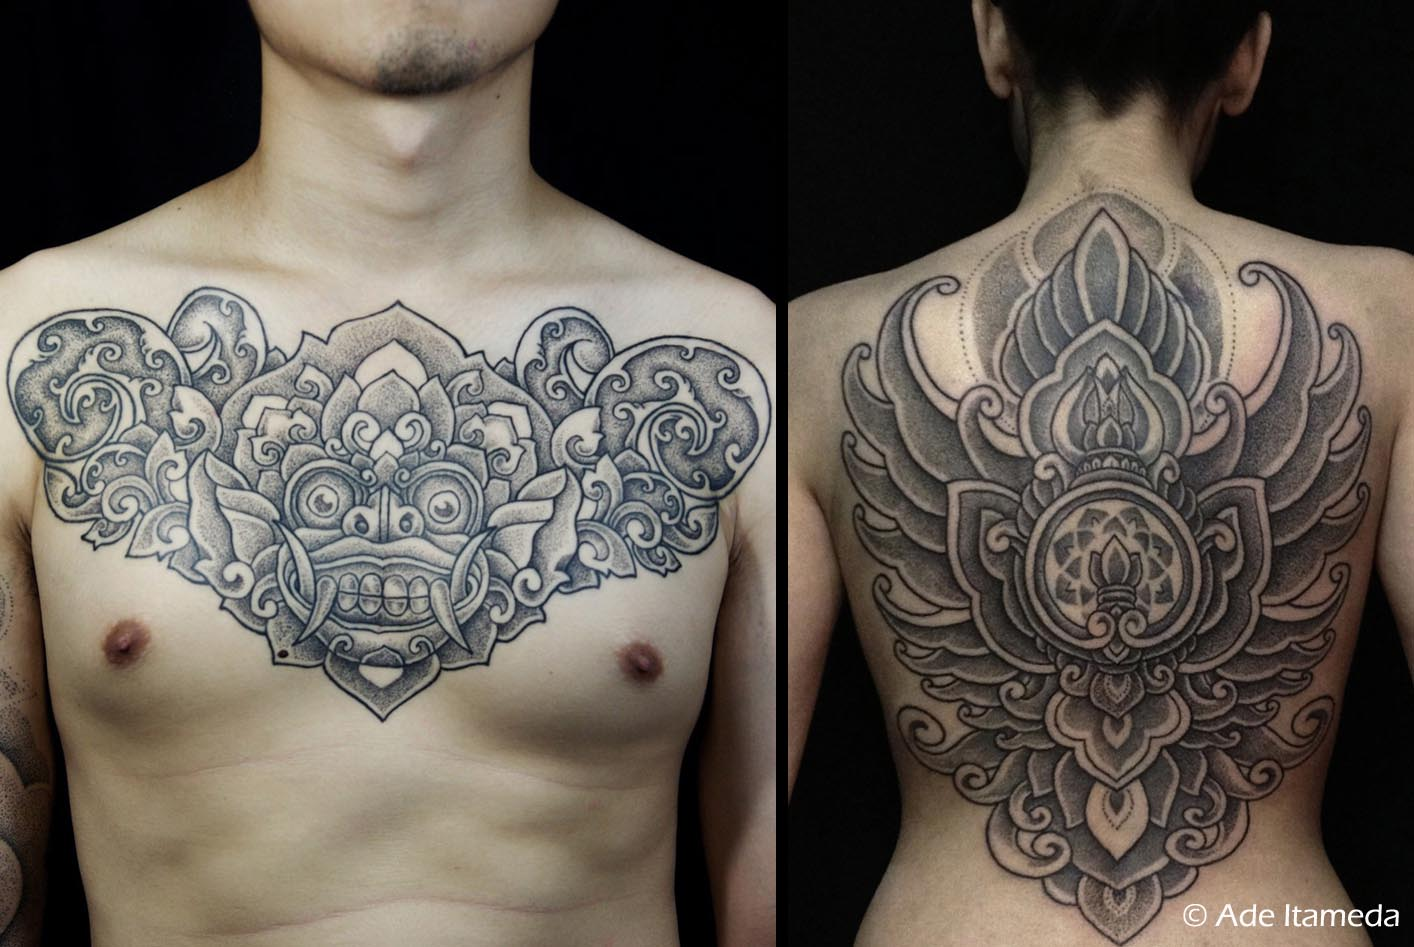 Balinese and Indo-batik inspired tattoos